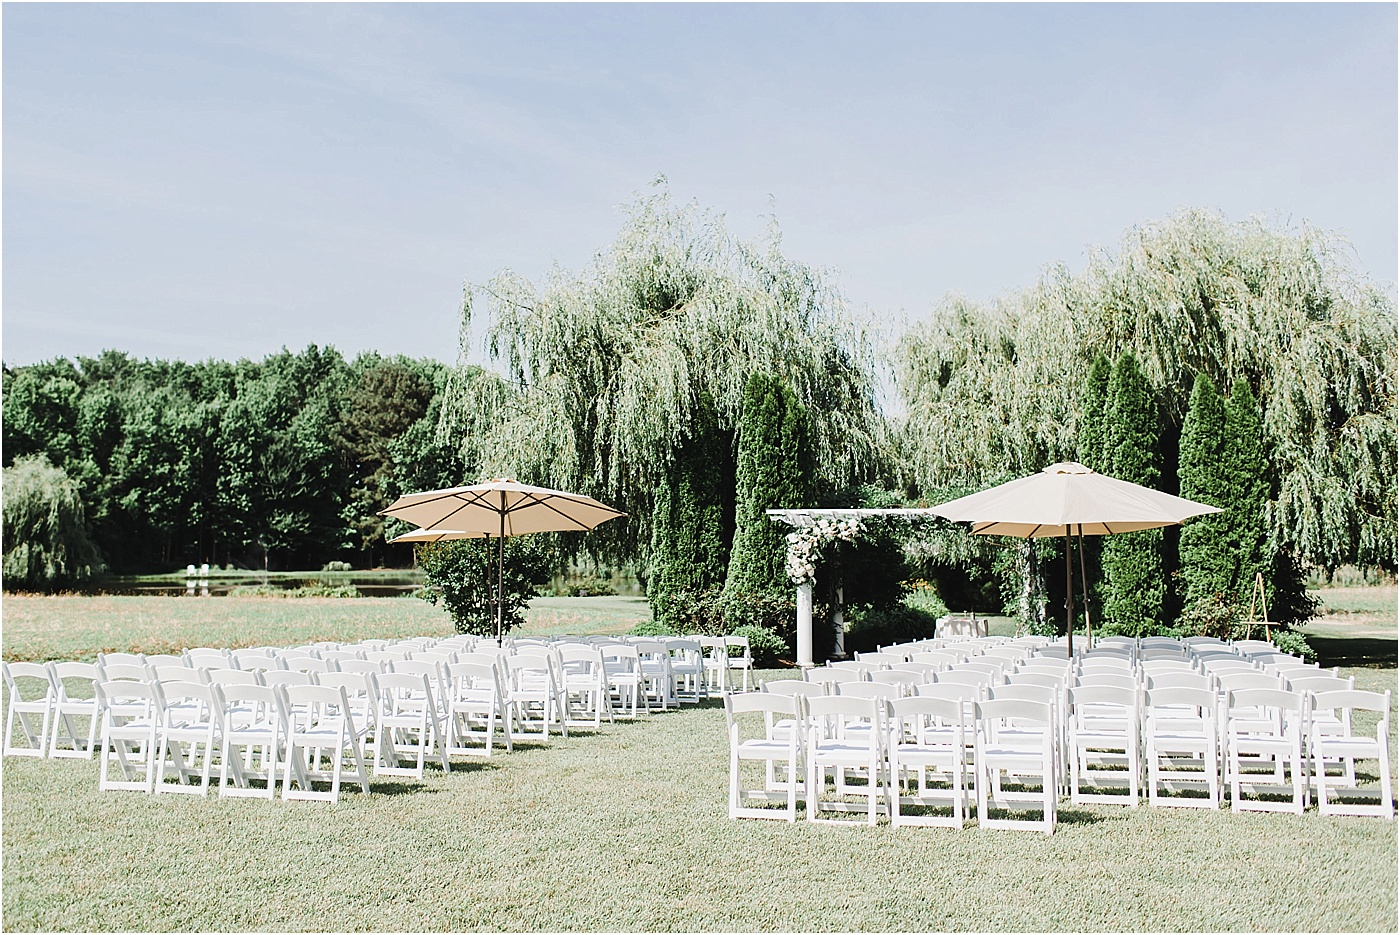 Ceremony Seating with White Chairs + Umbrellas